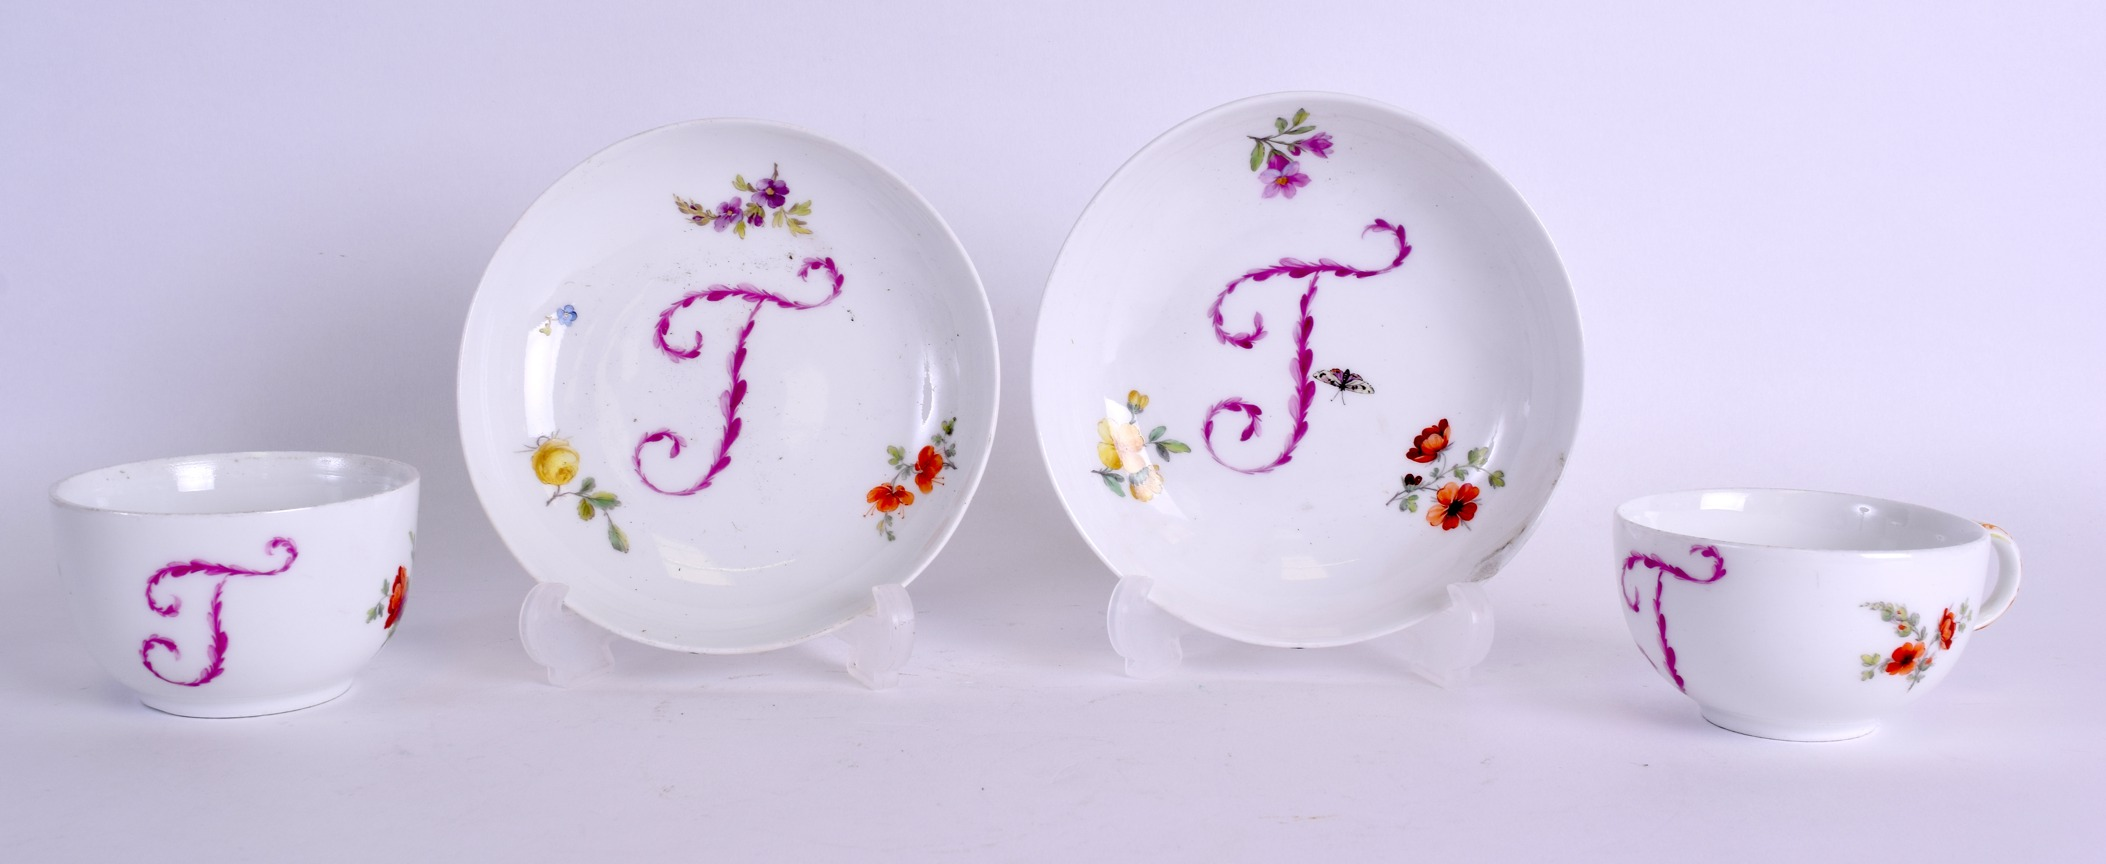 Lot 86 - AN 18TH CENTURY GERMAN BERLIN TEABOWL AND SAUCER together with a matching teacup and saucer, painted